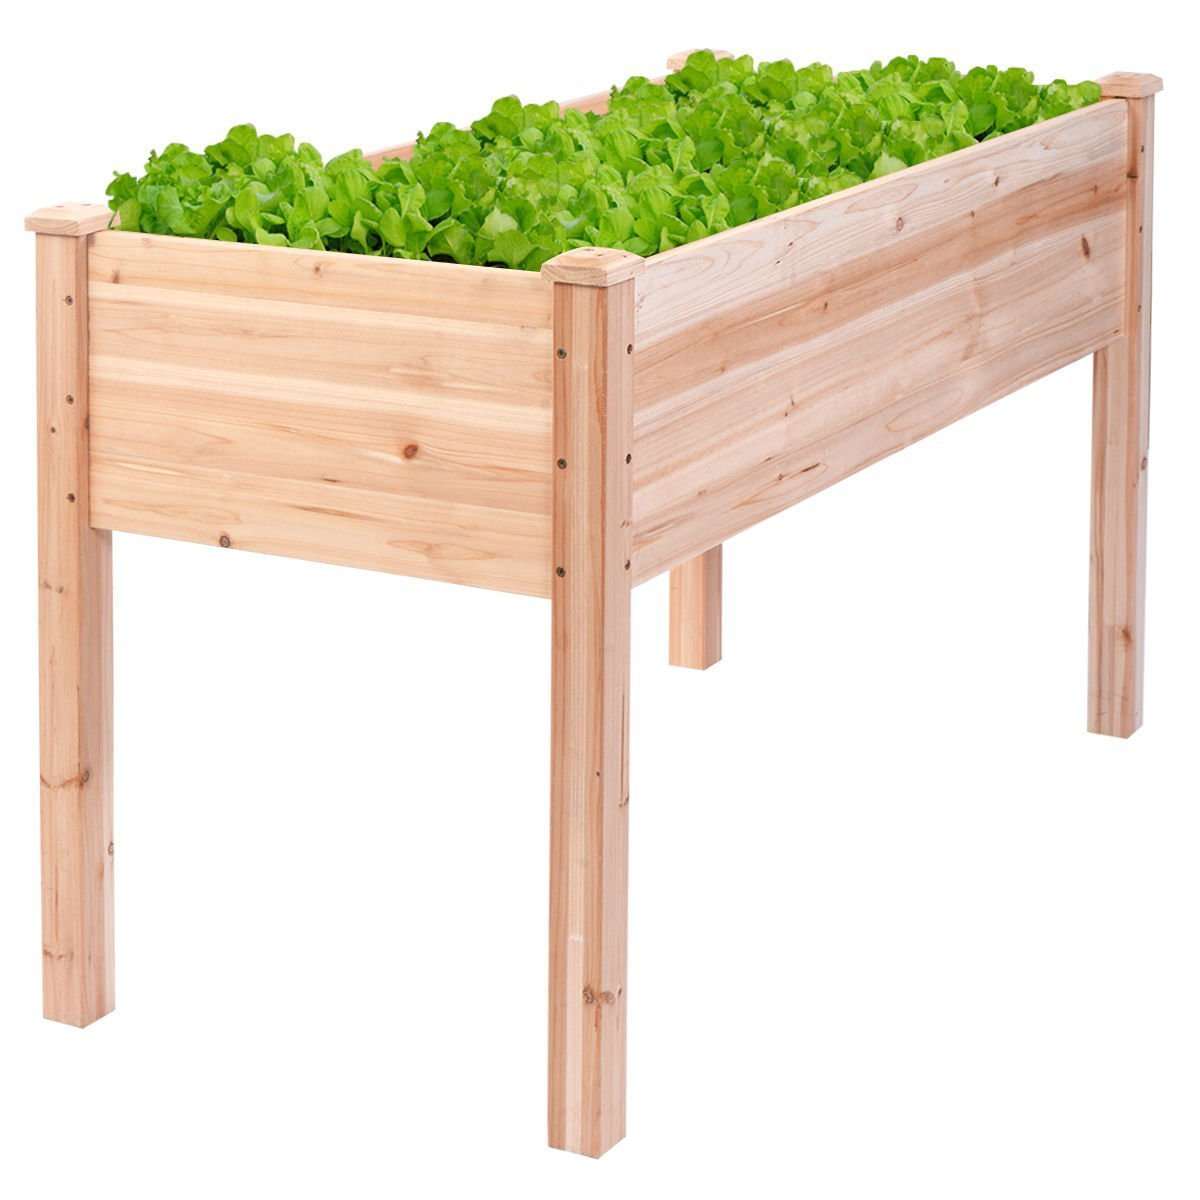 Giantex Raised Garden Bed Vegetables Fruits Grow Planter Patio Yard Potato Onion Greenes Herb Flower Heavy Duty Wooden Frame Gardening Planting Beds Durable Outdoor Cedar Wood Elevated Planter GT2936